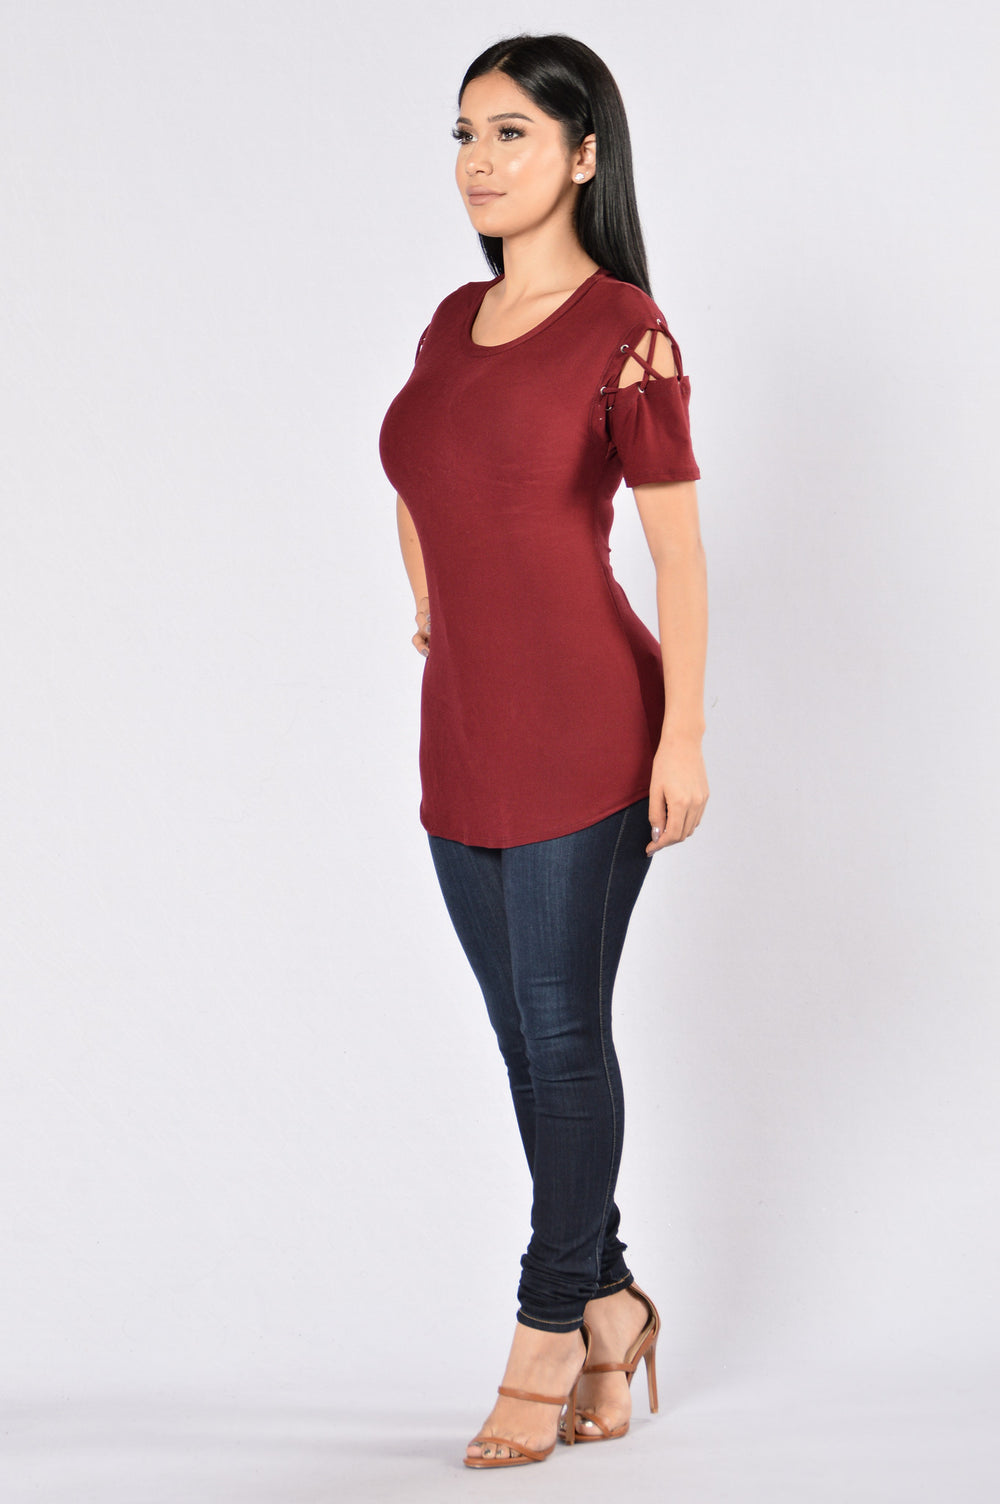 Needle and Thread Top - Burgundy